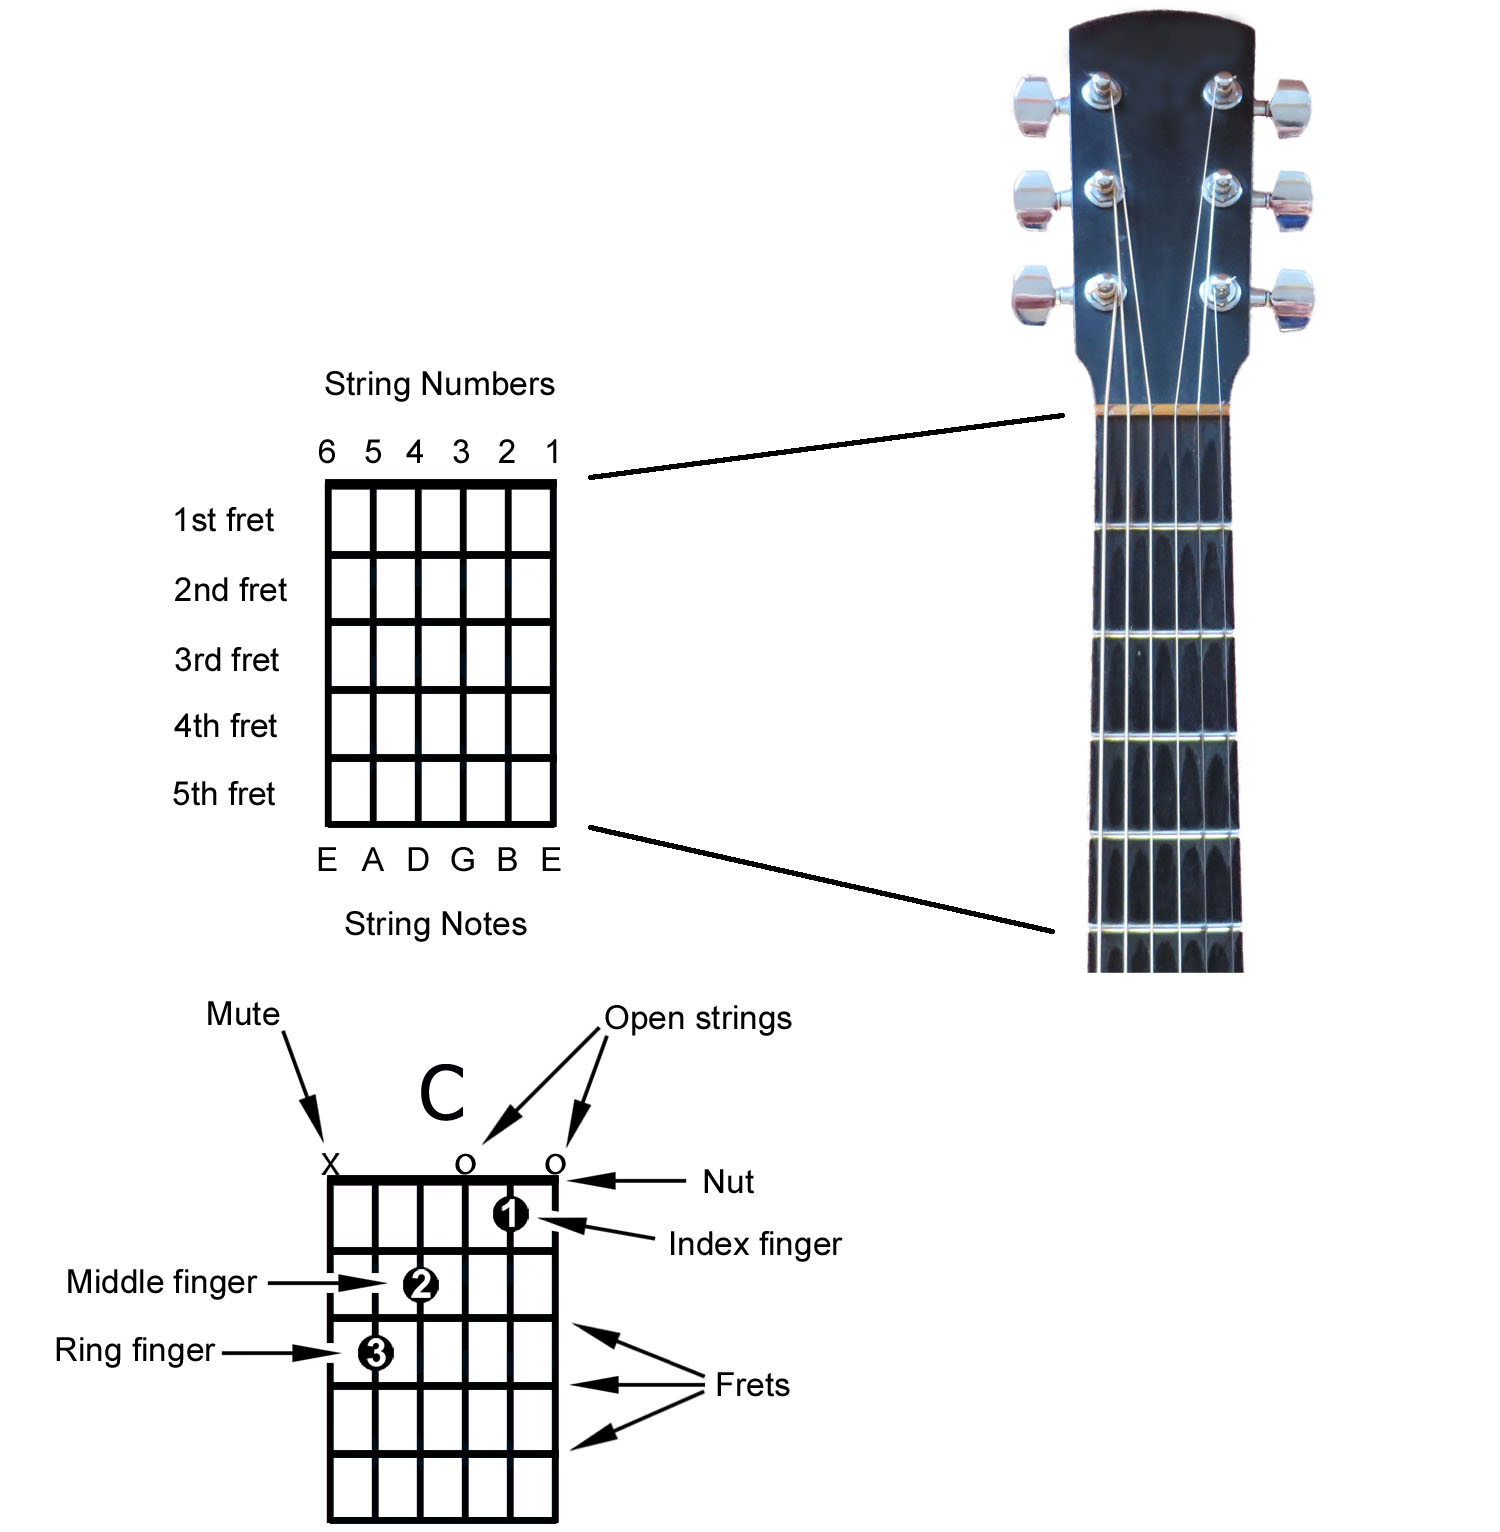 how to read a chord diagram and other chord notation rh guitarhabits com guitar diagram strings diagram of guitar strings